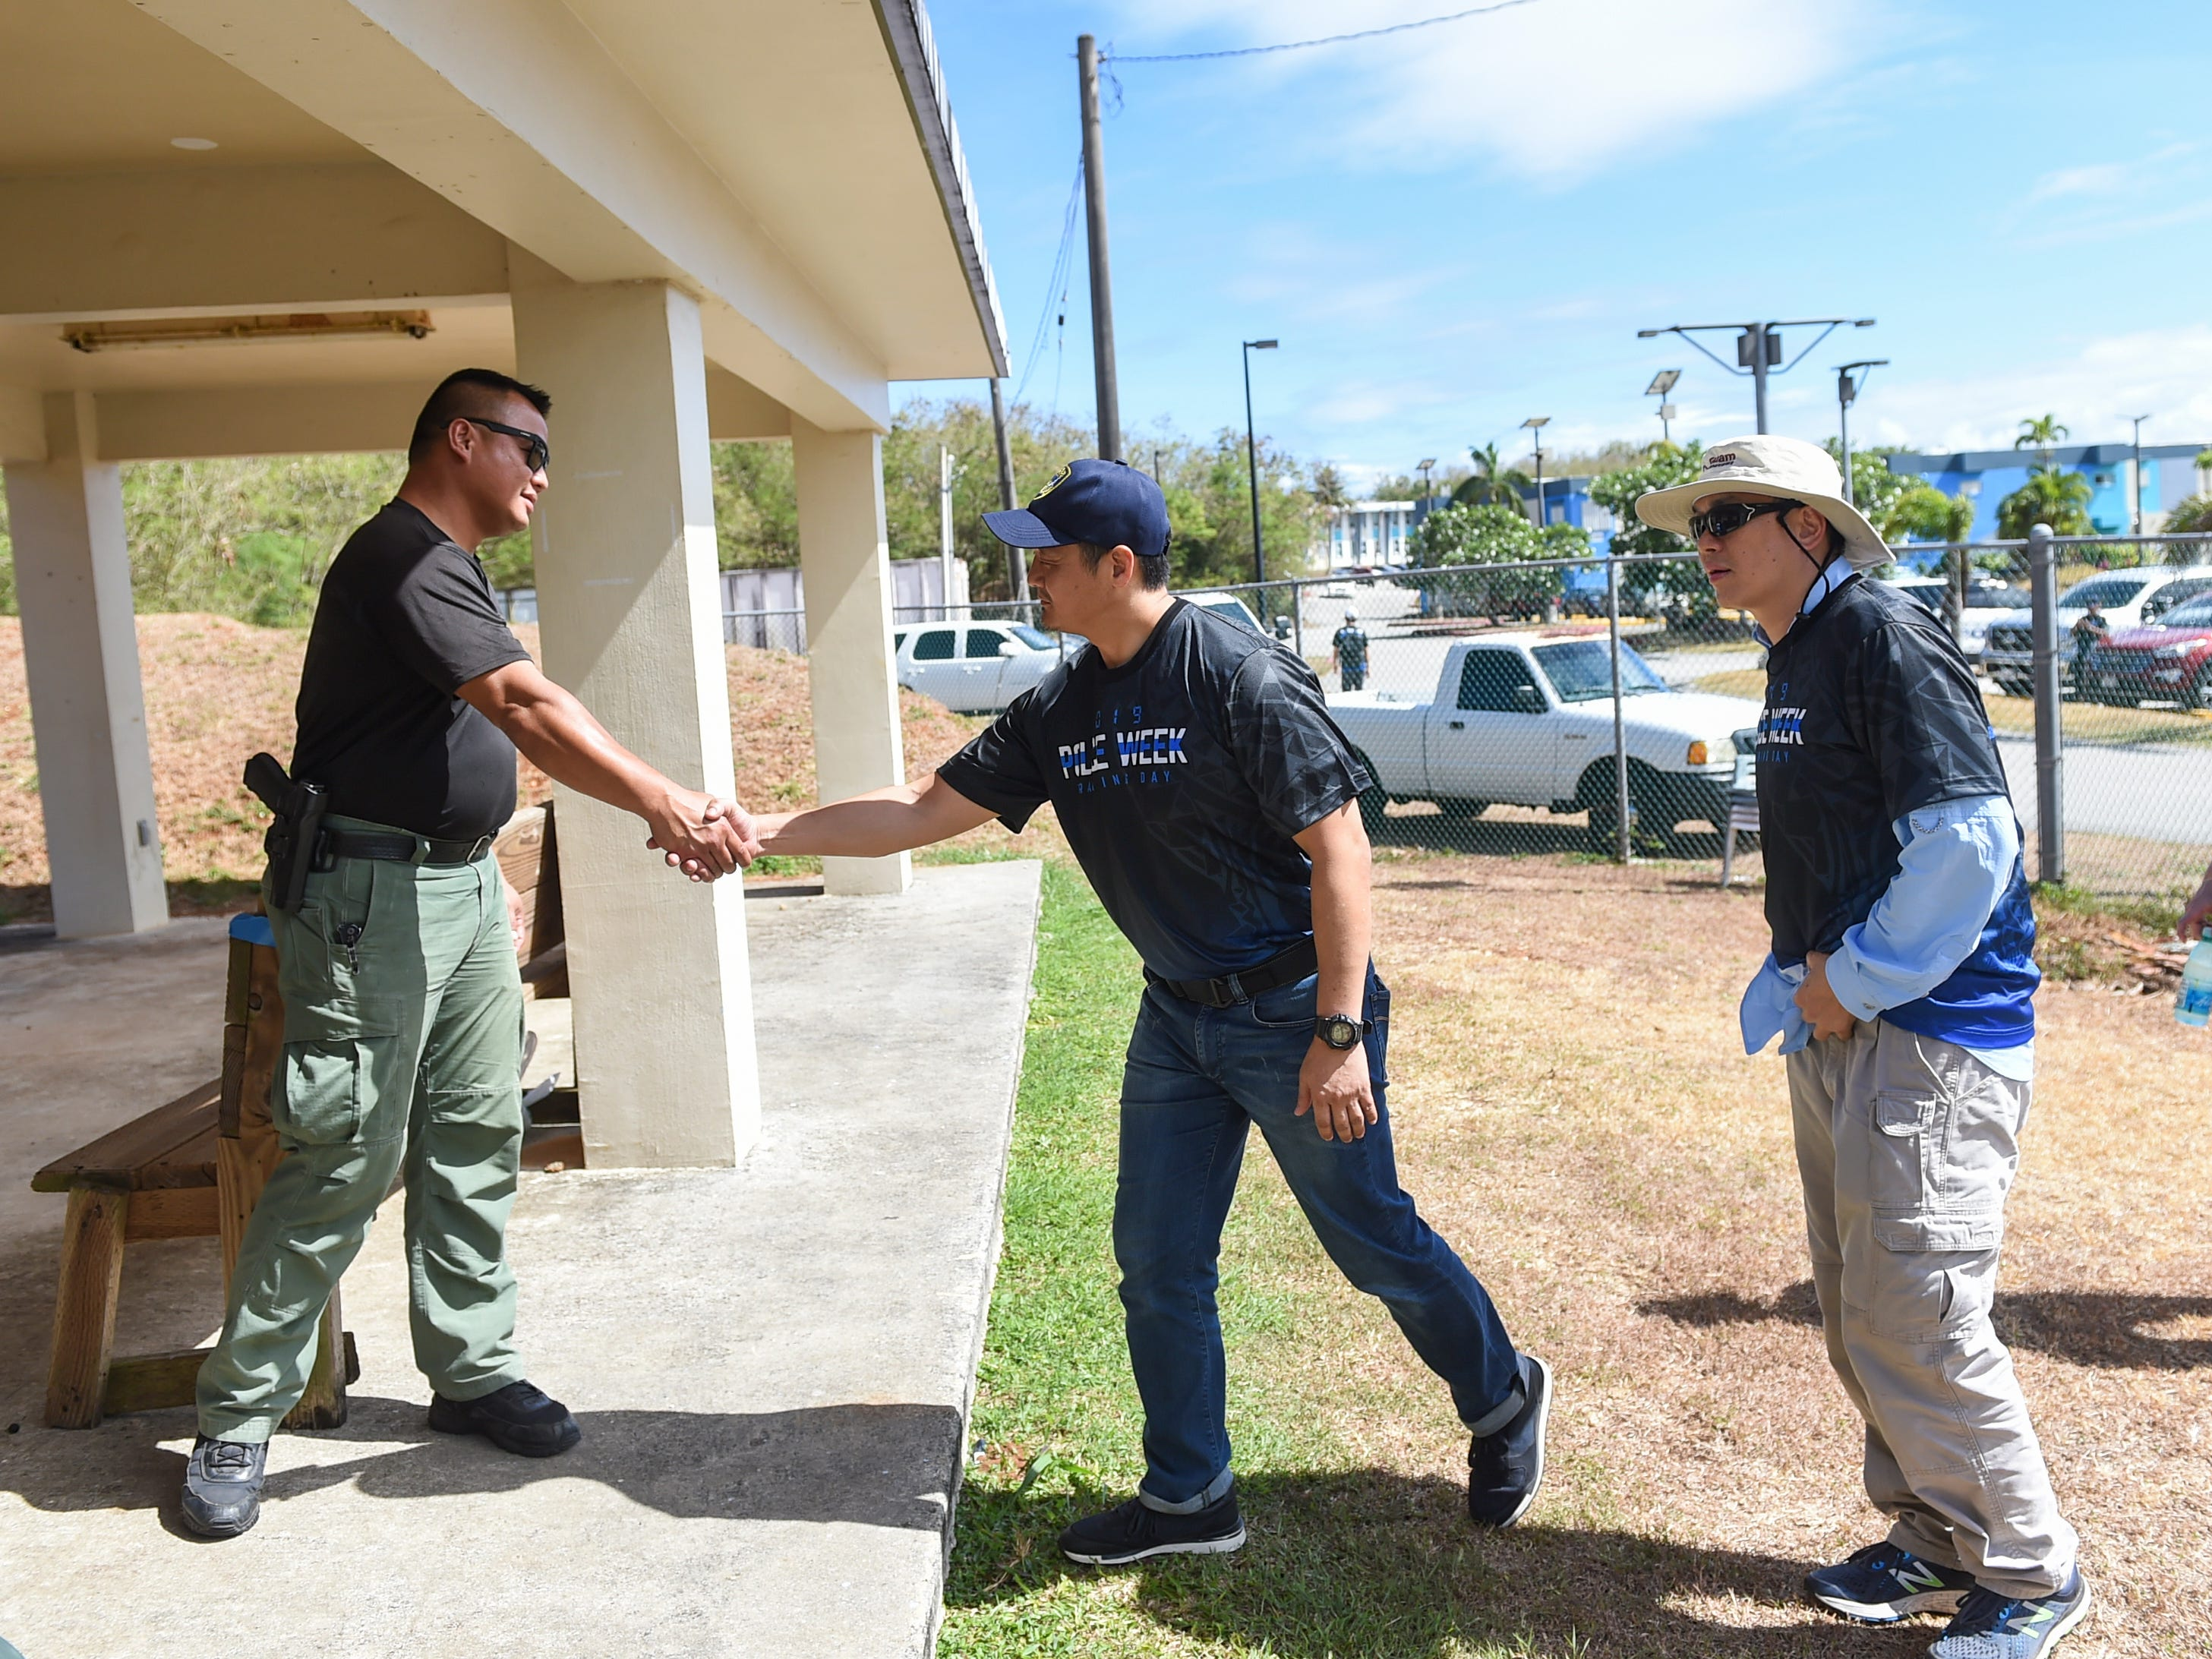 Executives from various companies meet with Guam Police Department officers for firearms training at GPD's shooting range on the Guam Community College campus in Mangilao, May 14, 2019.